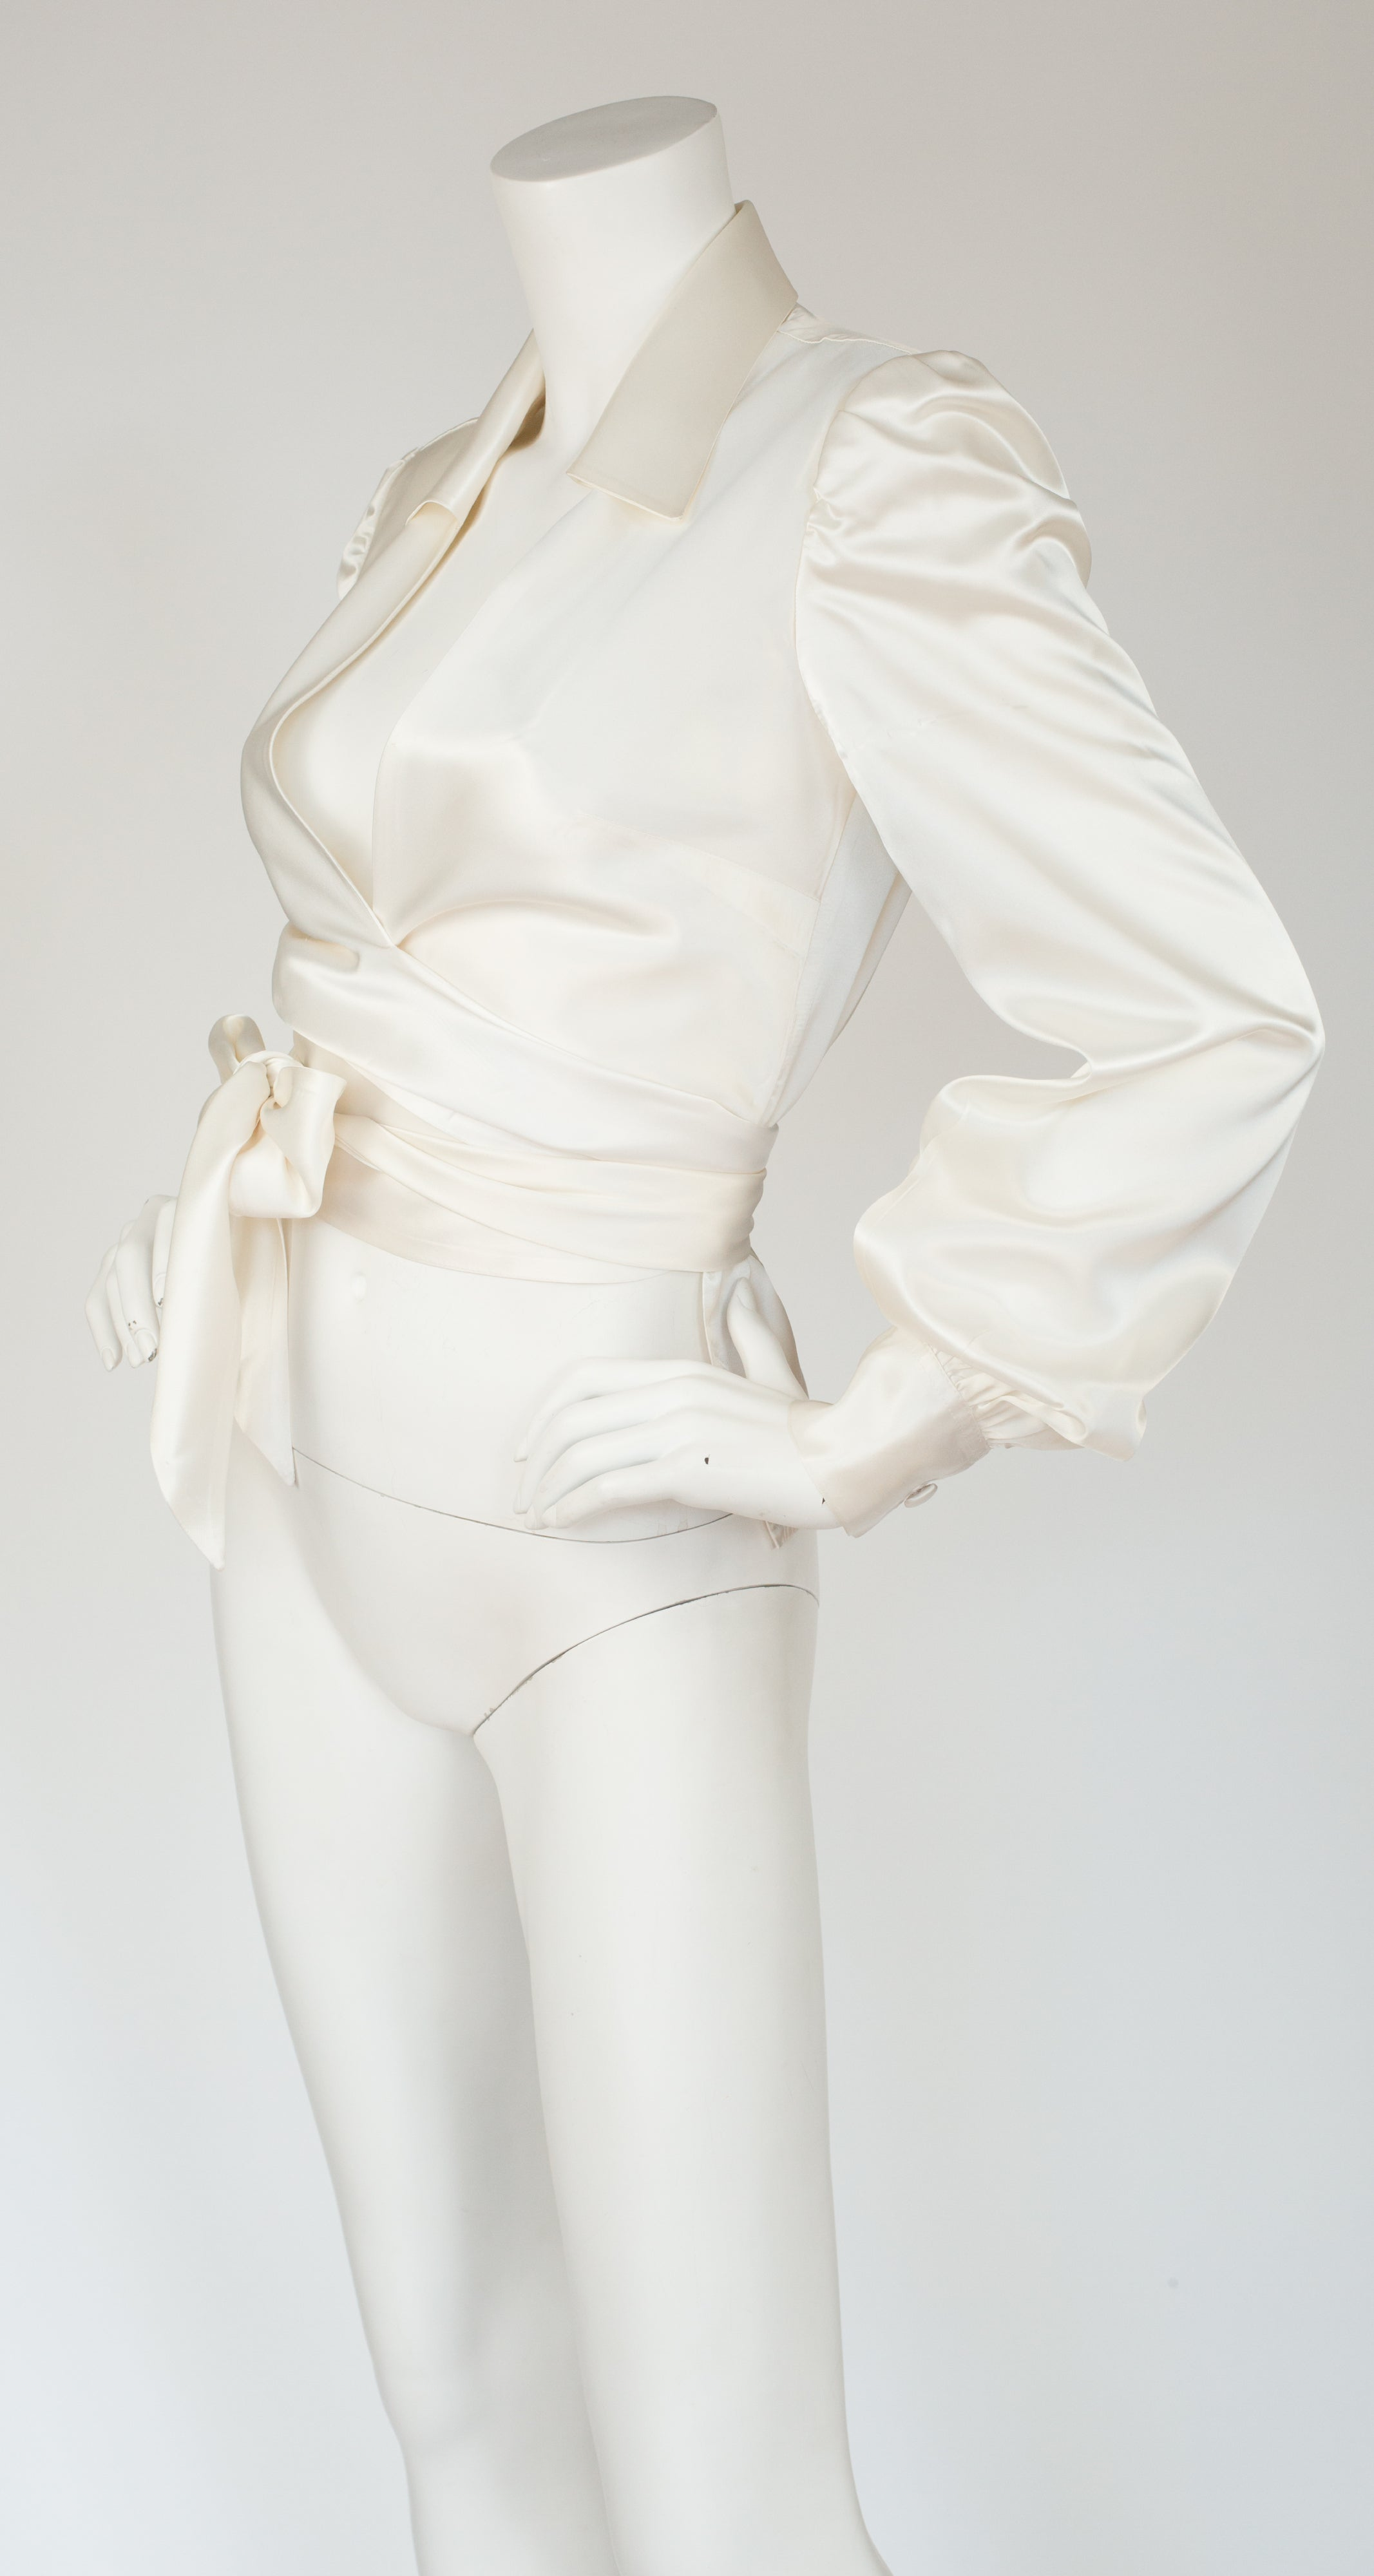 1970s Cream Satin Tie Balloon Sleeve Blouse